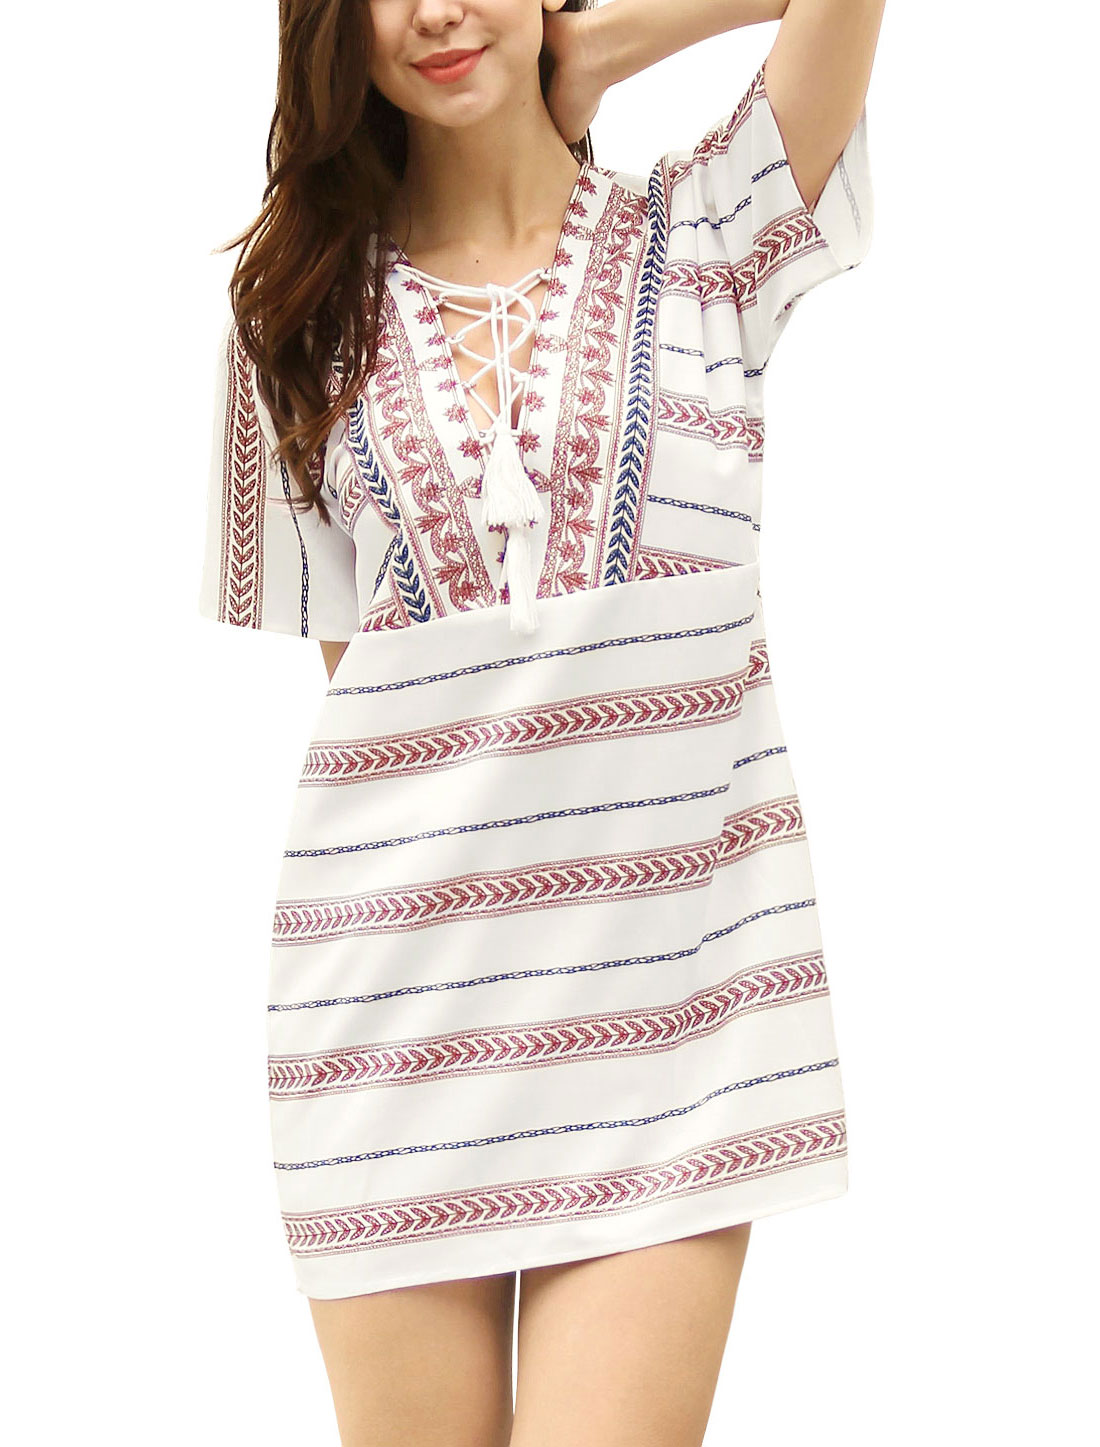 Women Leaves Stripes Pattern Fringe Lace Up Mini Dress White XS